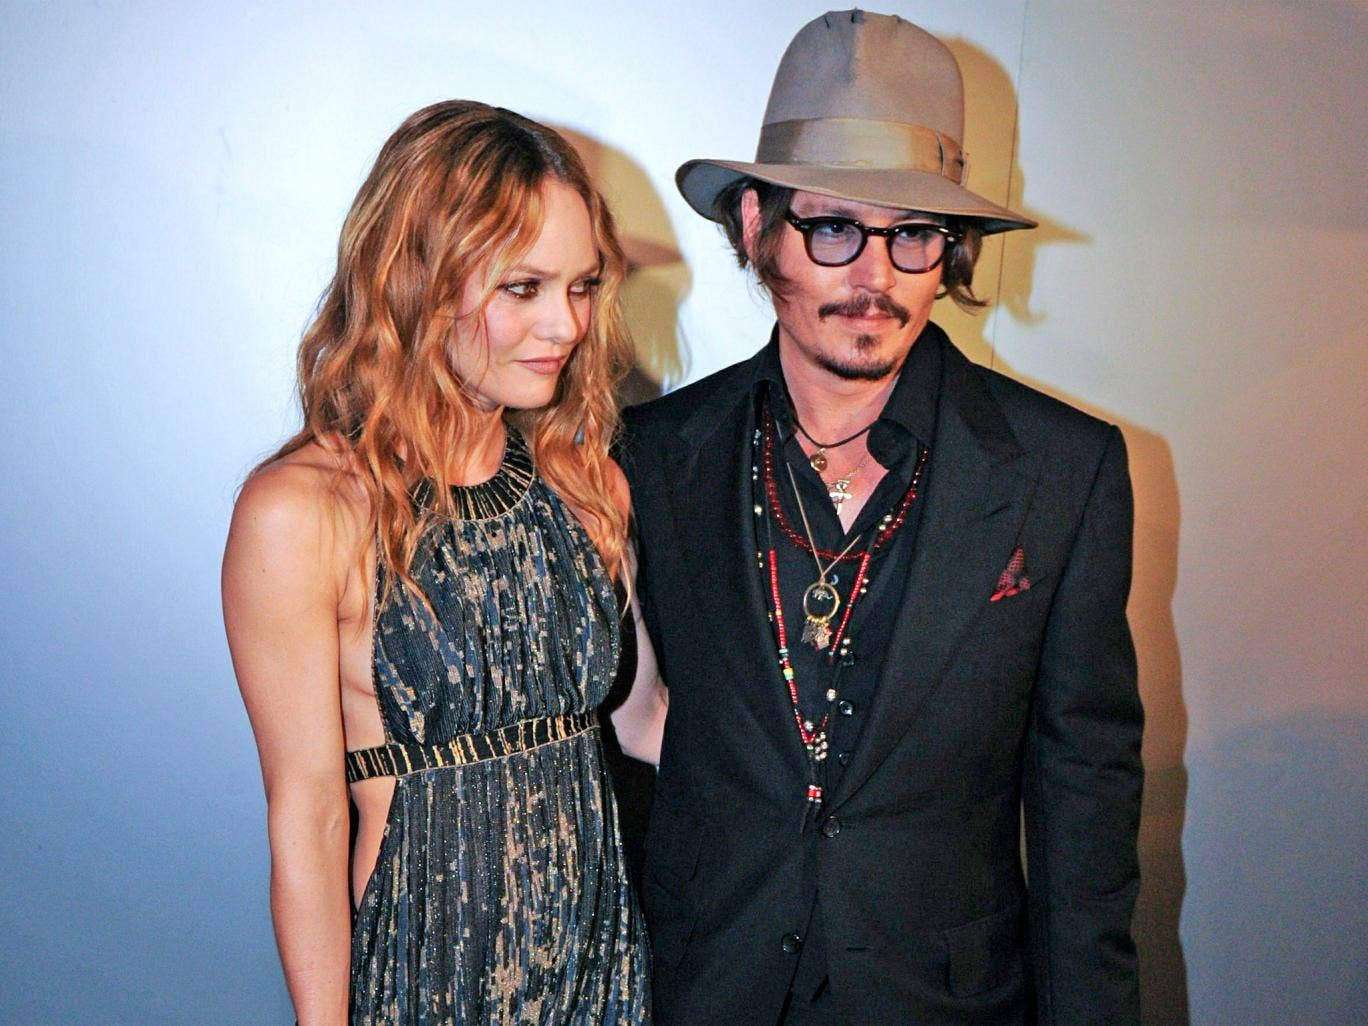 Johnny Depp and Vanessa Paradis were partners for 14 years